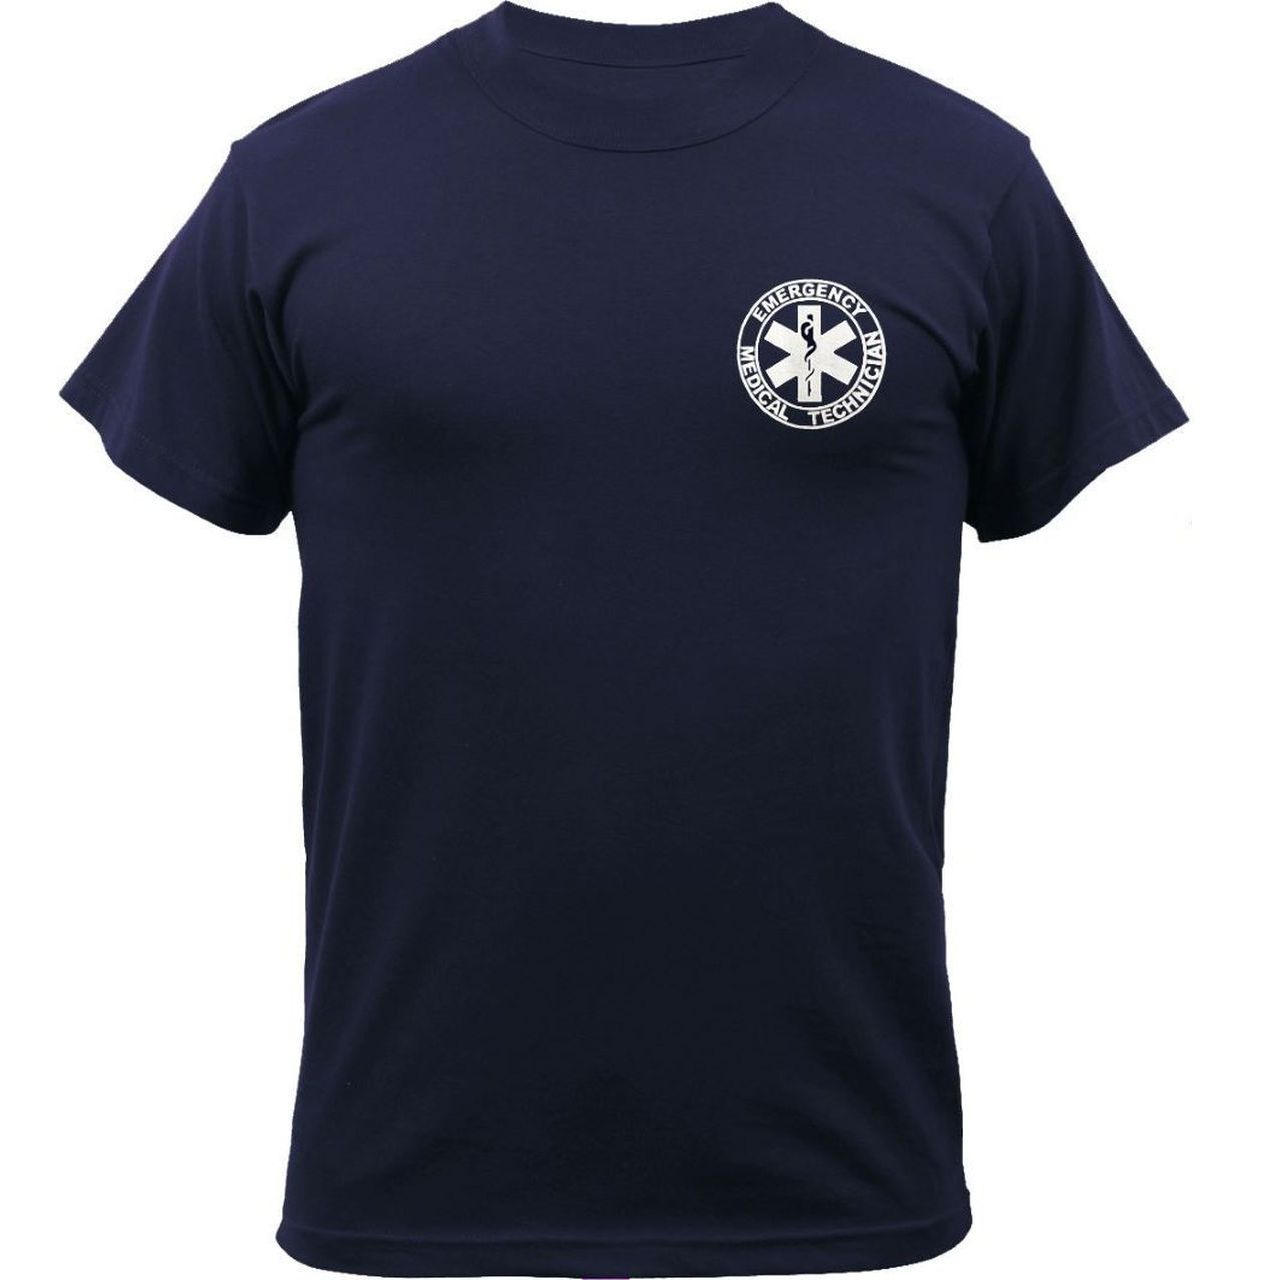 Kemp USA Navy EMT Shirt With Front And Back Logo - Small